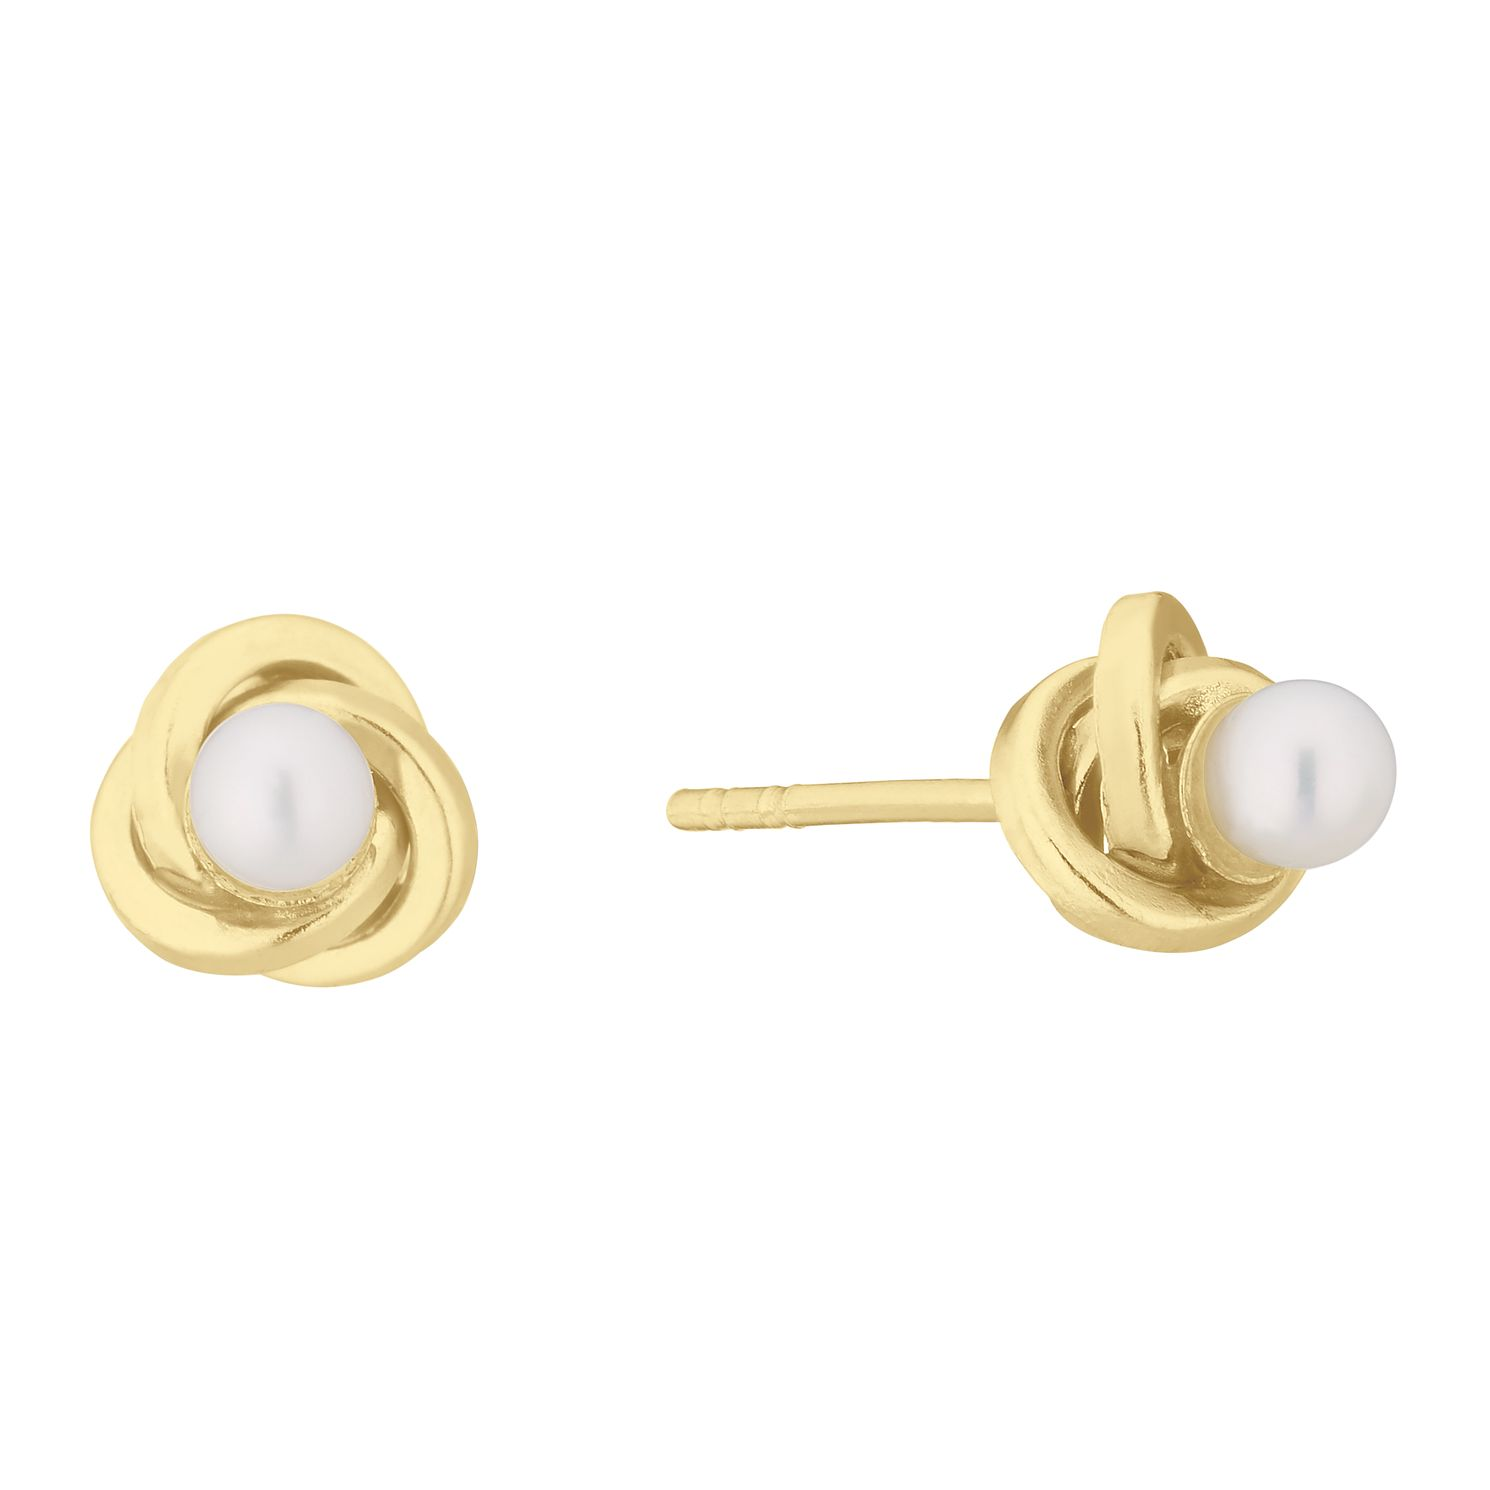 9ct Yellow Gold Cultured Freshwater Pearl Knot Stud Earrings - Product number 2961105